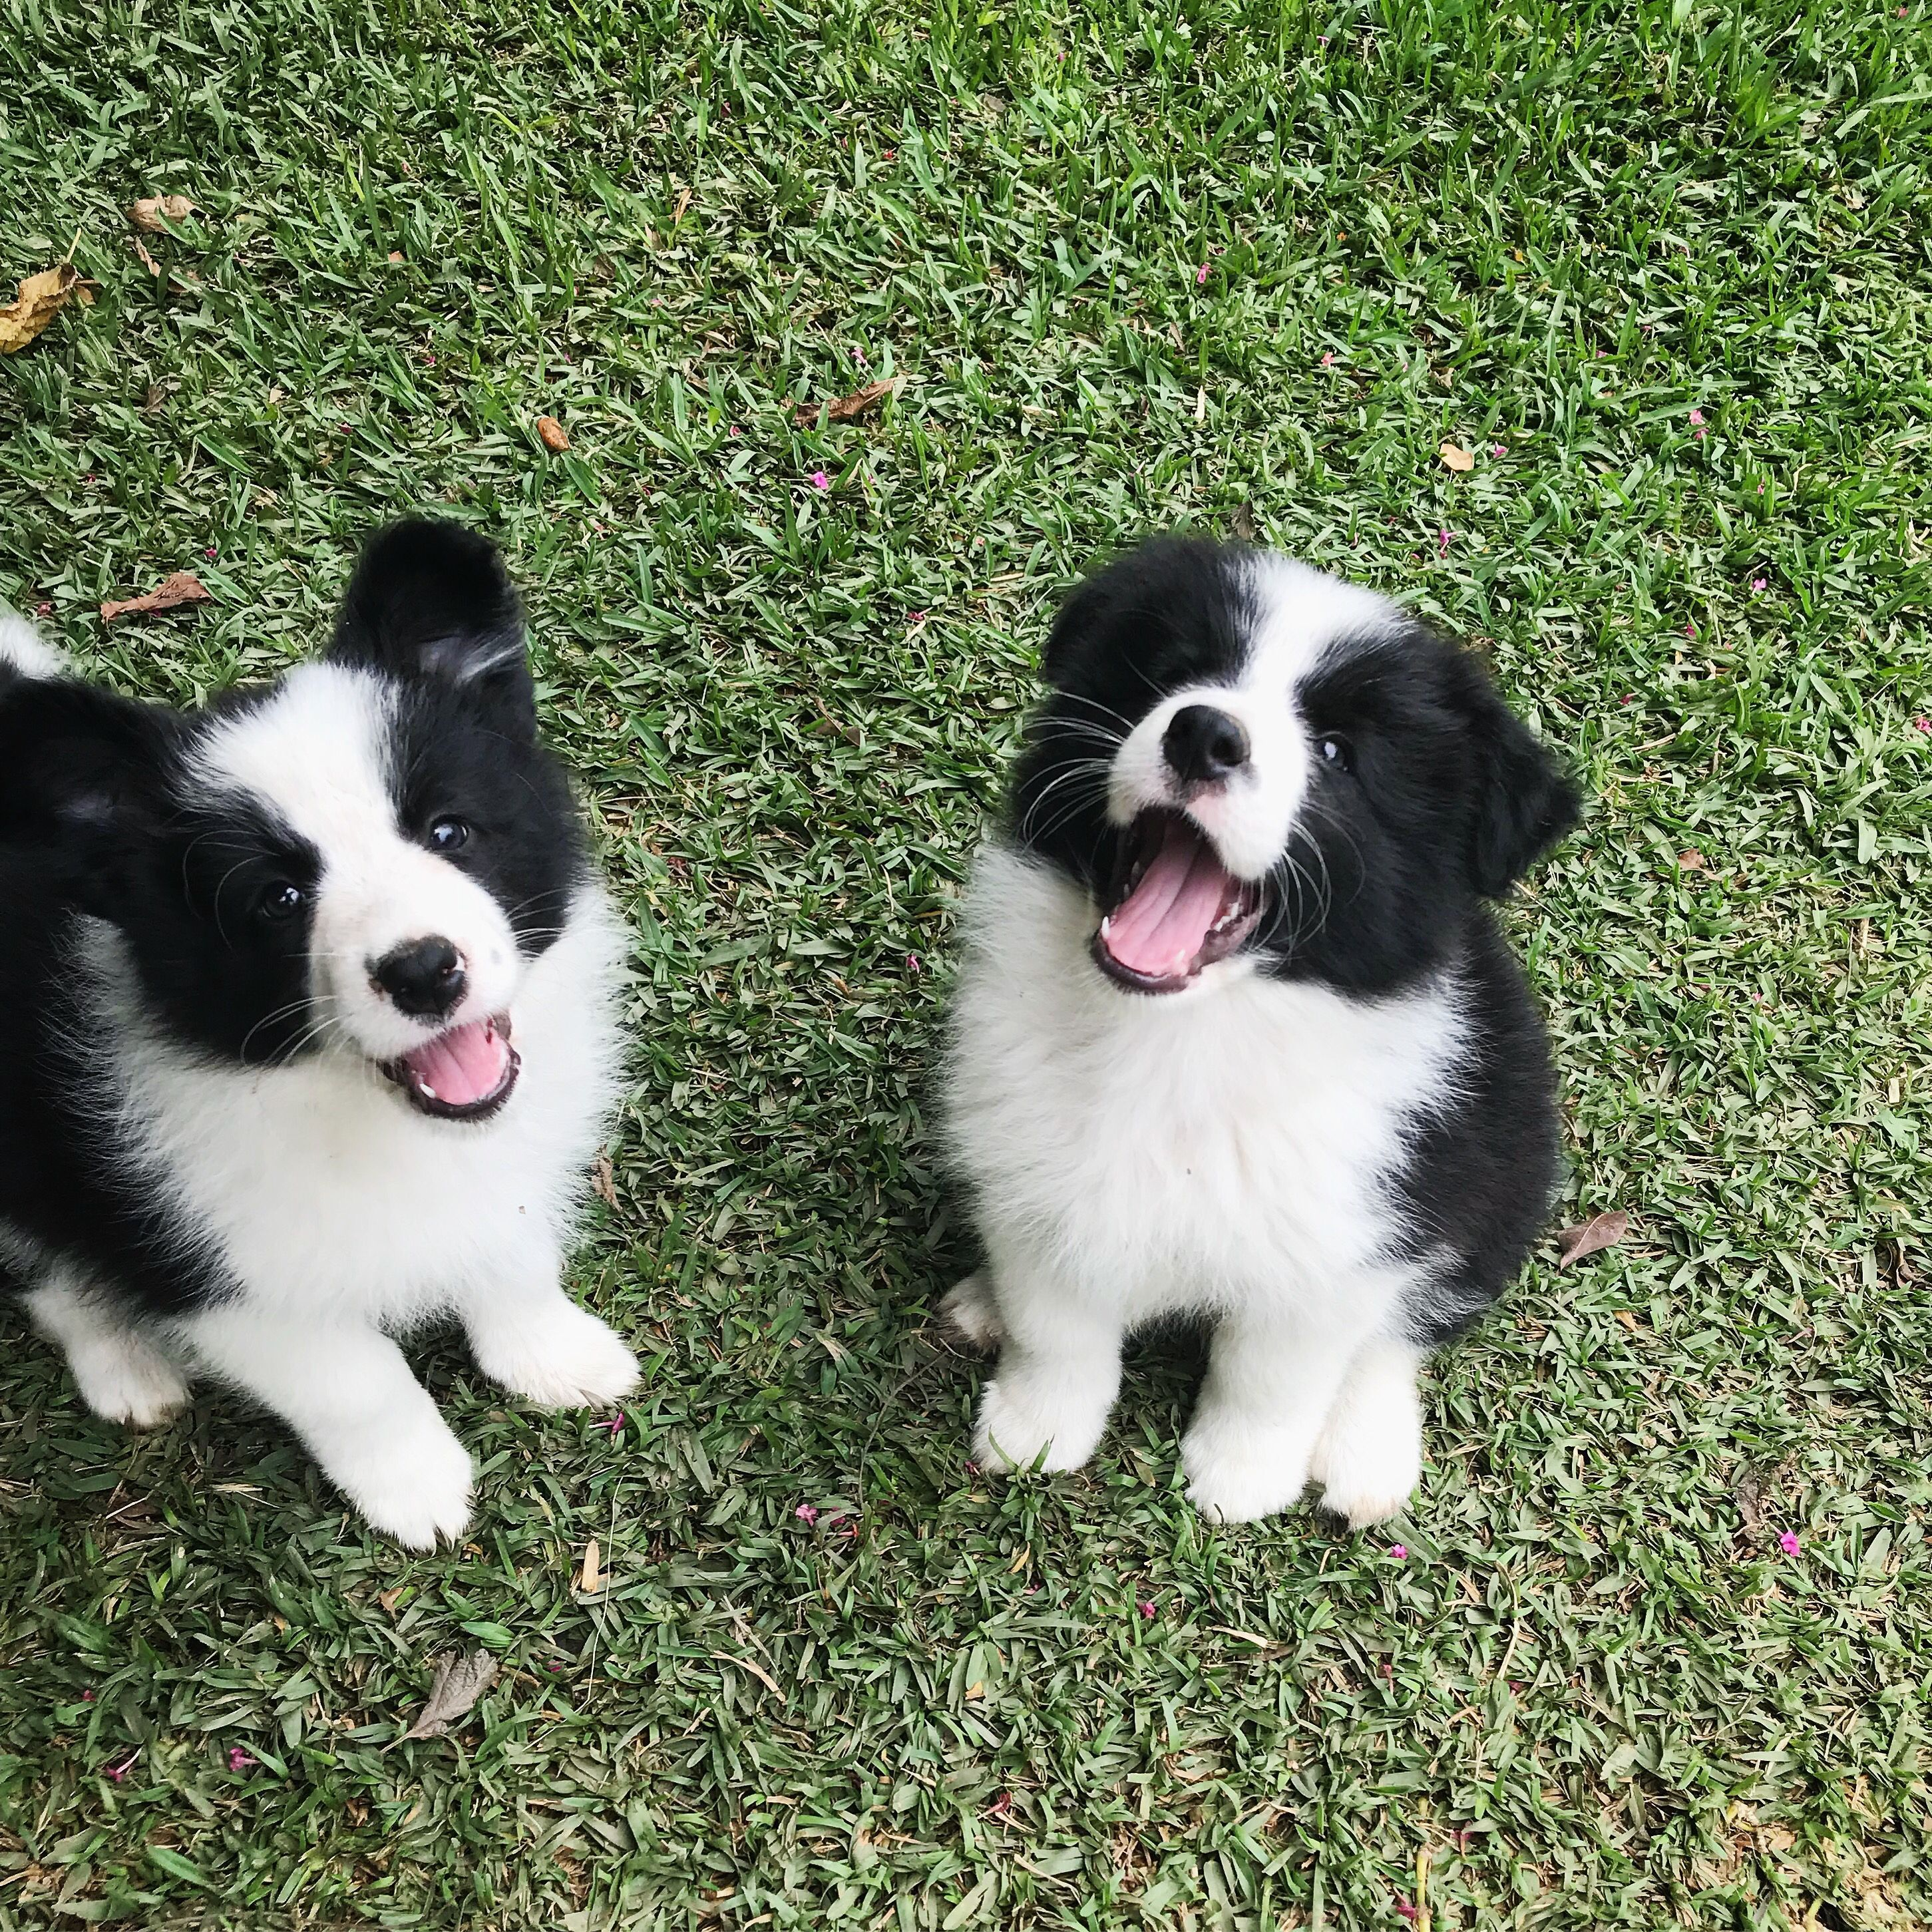 Puppies Border Collies Bordercollie Collie Puppies Cute Puppies Cute Animals